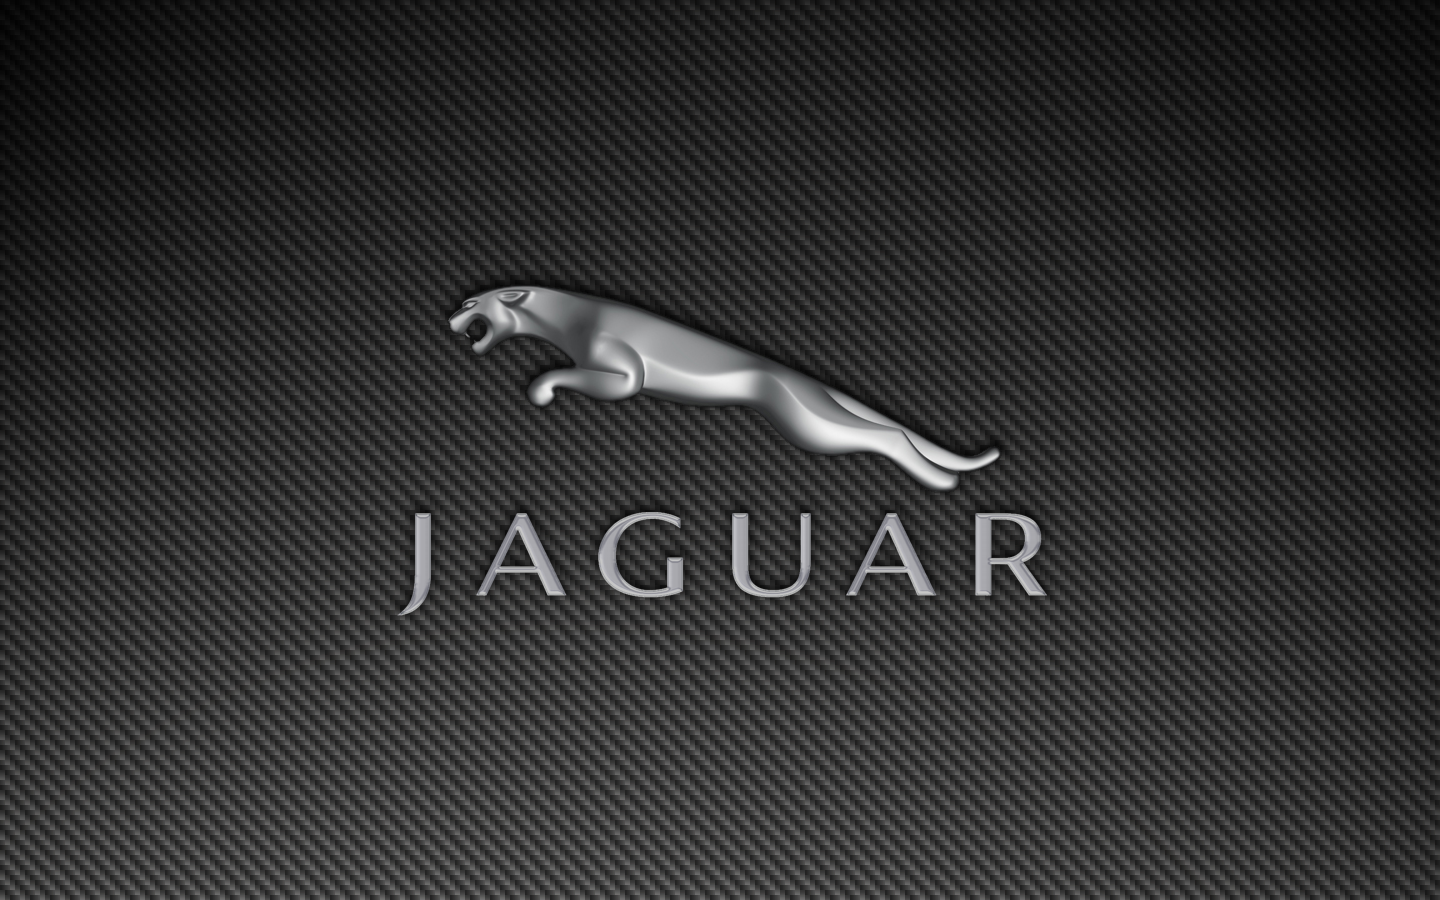 Jaguar logo jaguar car symbol meaning and history car brand names color of the jaguar logo biocorpaavc Gallery